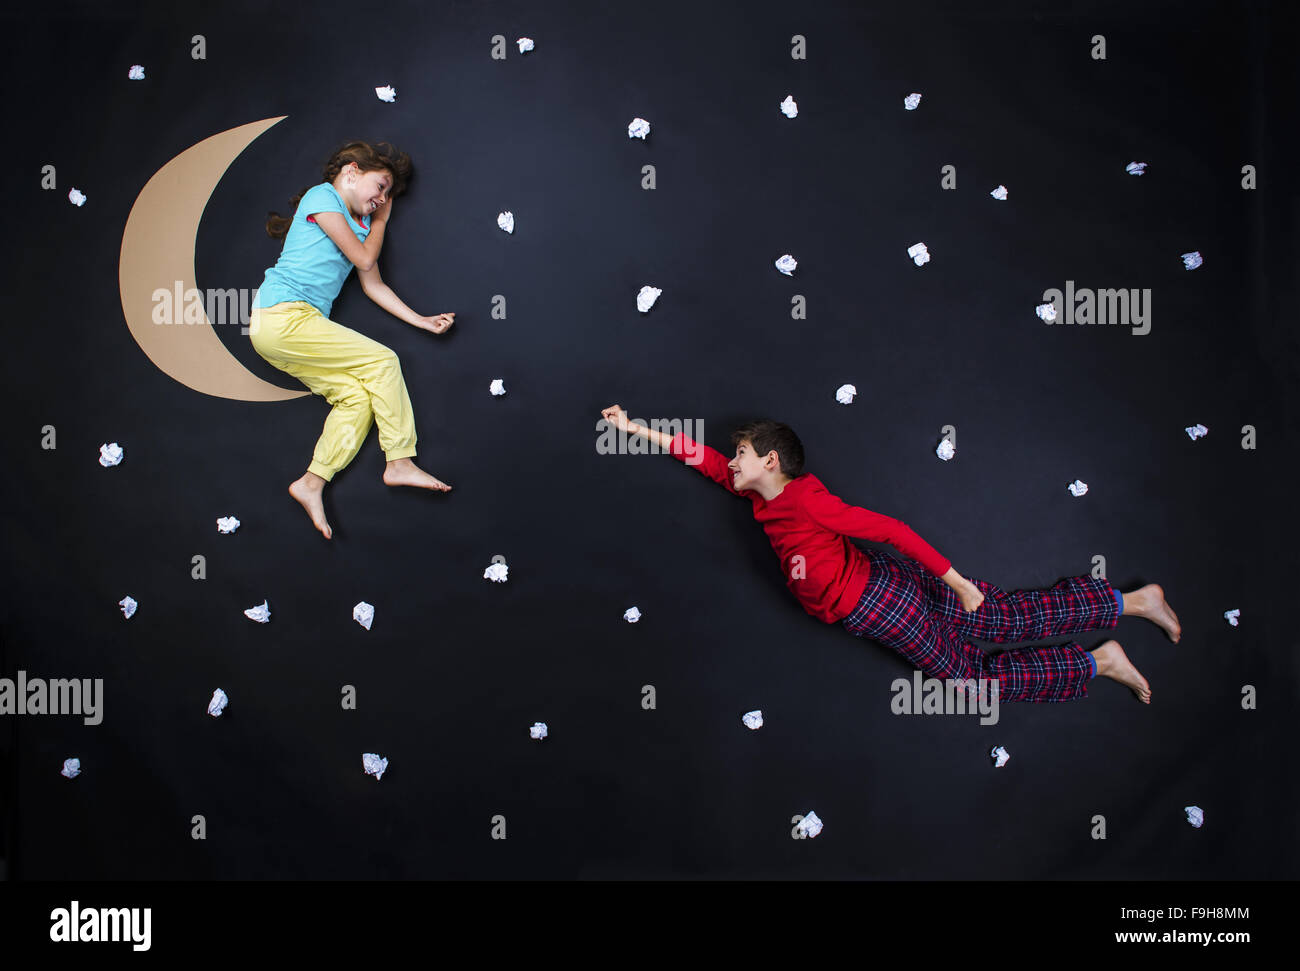 Children getting ready for bedtime. Studio shot on a black background. - Stock Image